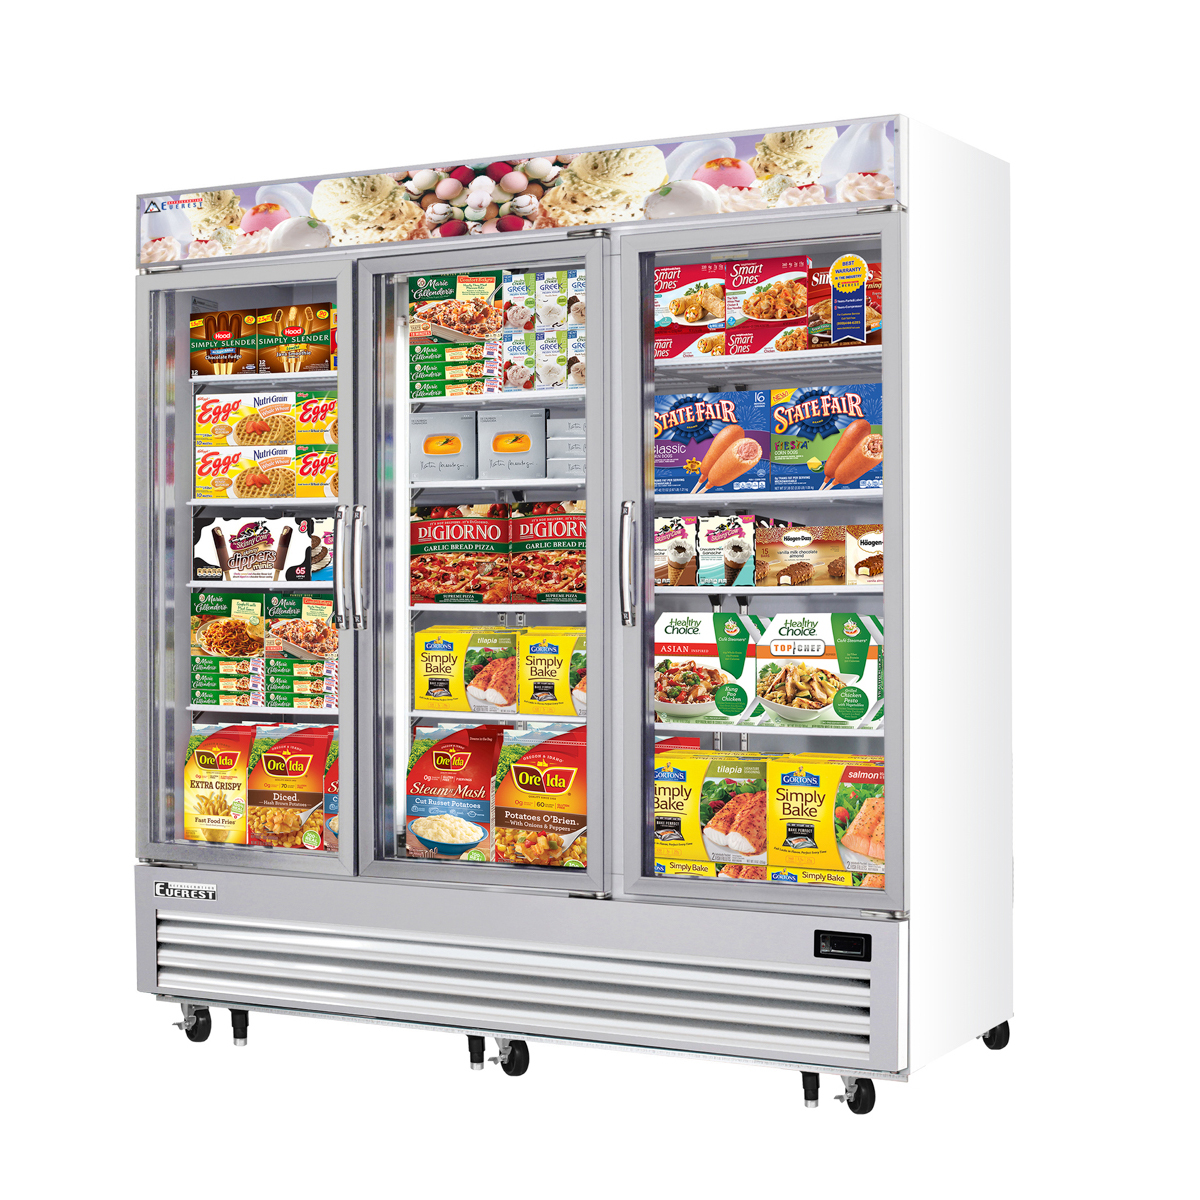 Freezer Mega Restaurant Supply